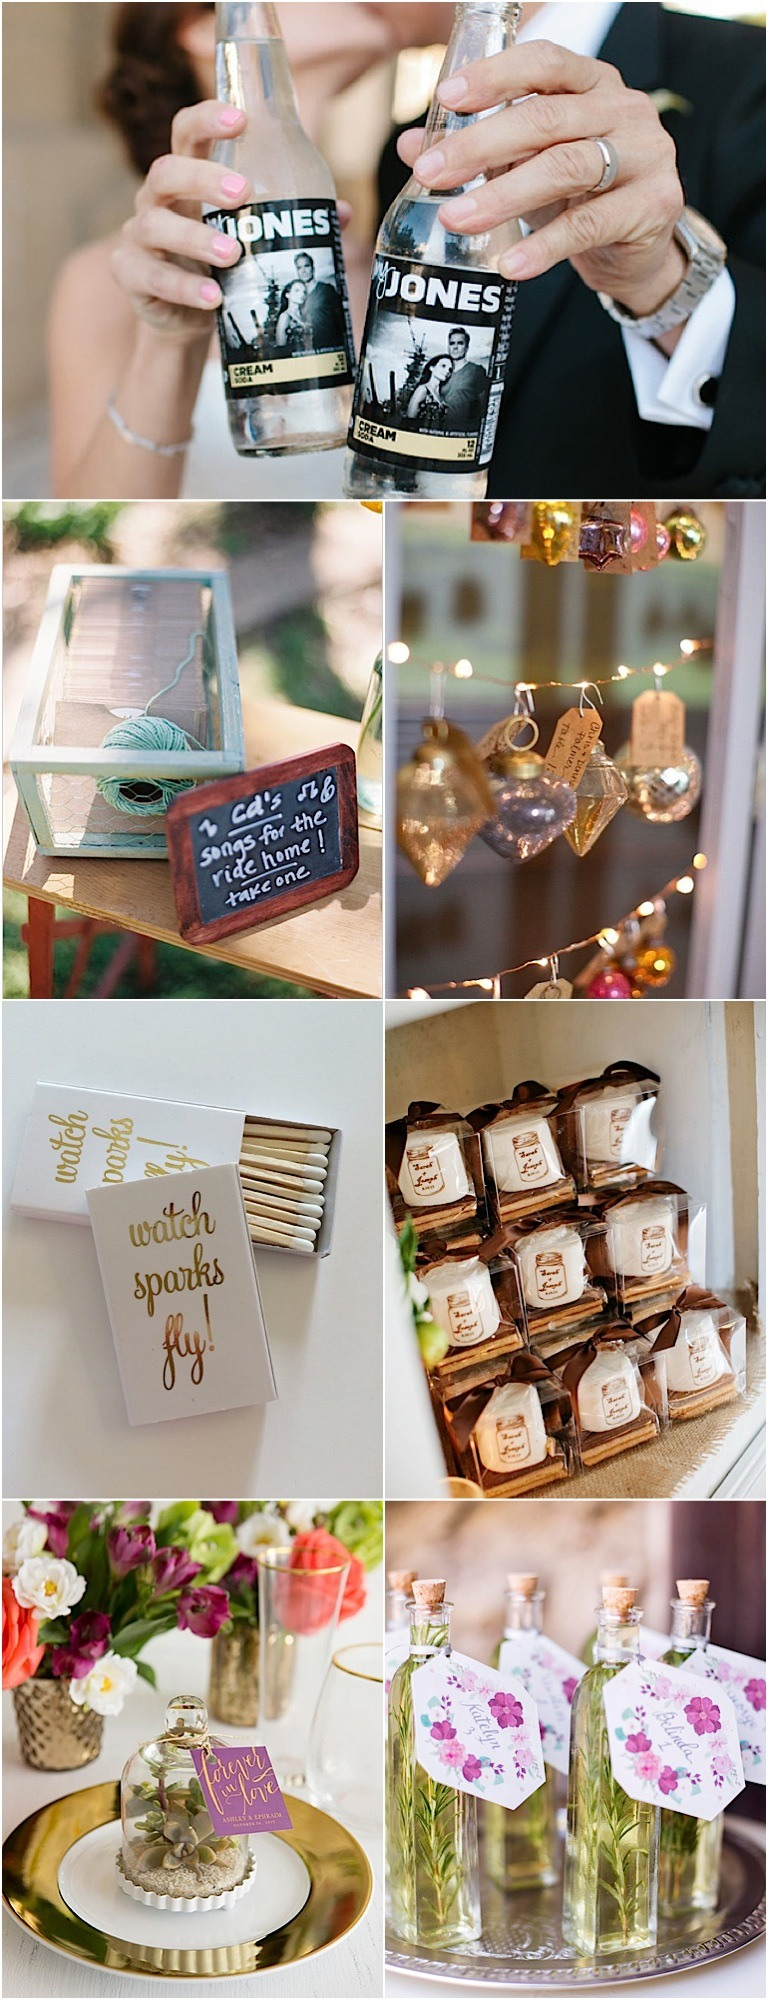 Wedding Gift Away Ideas : 20 Fabulous Wedding Favors to Give Away with Pride - MODwedding